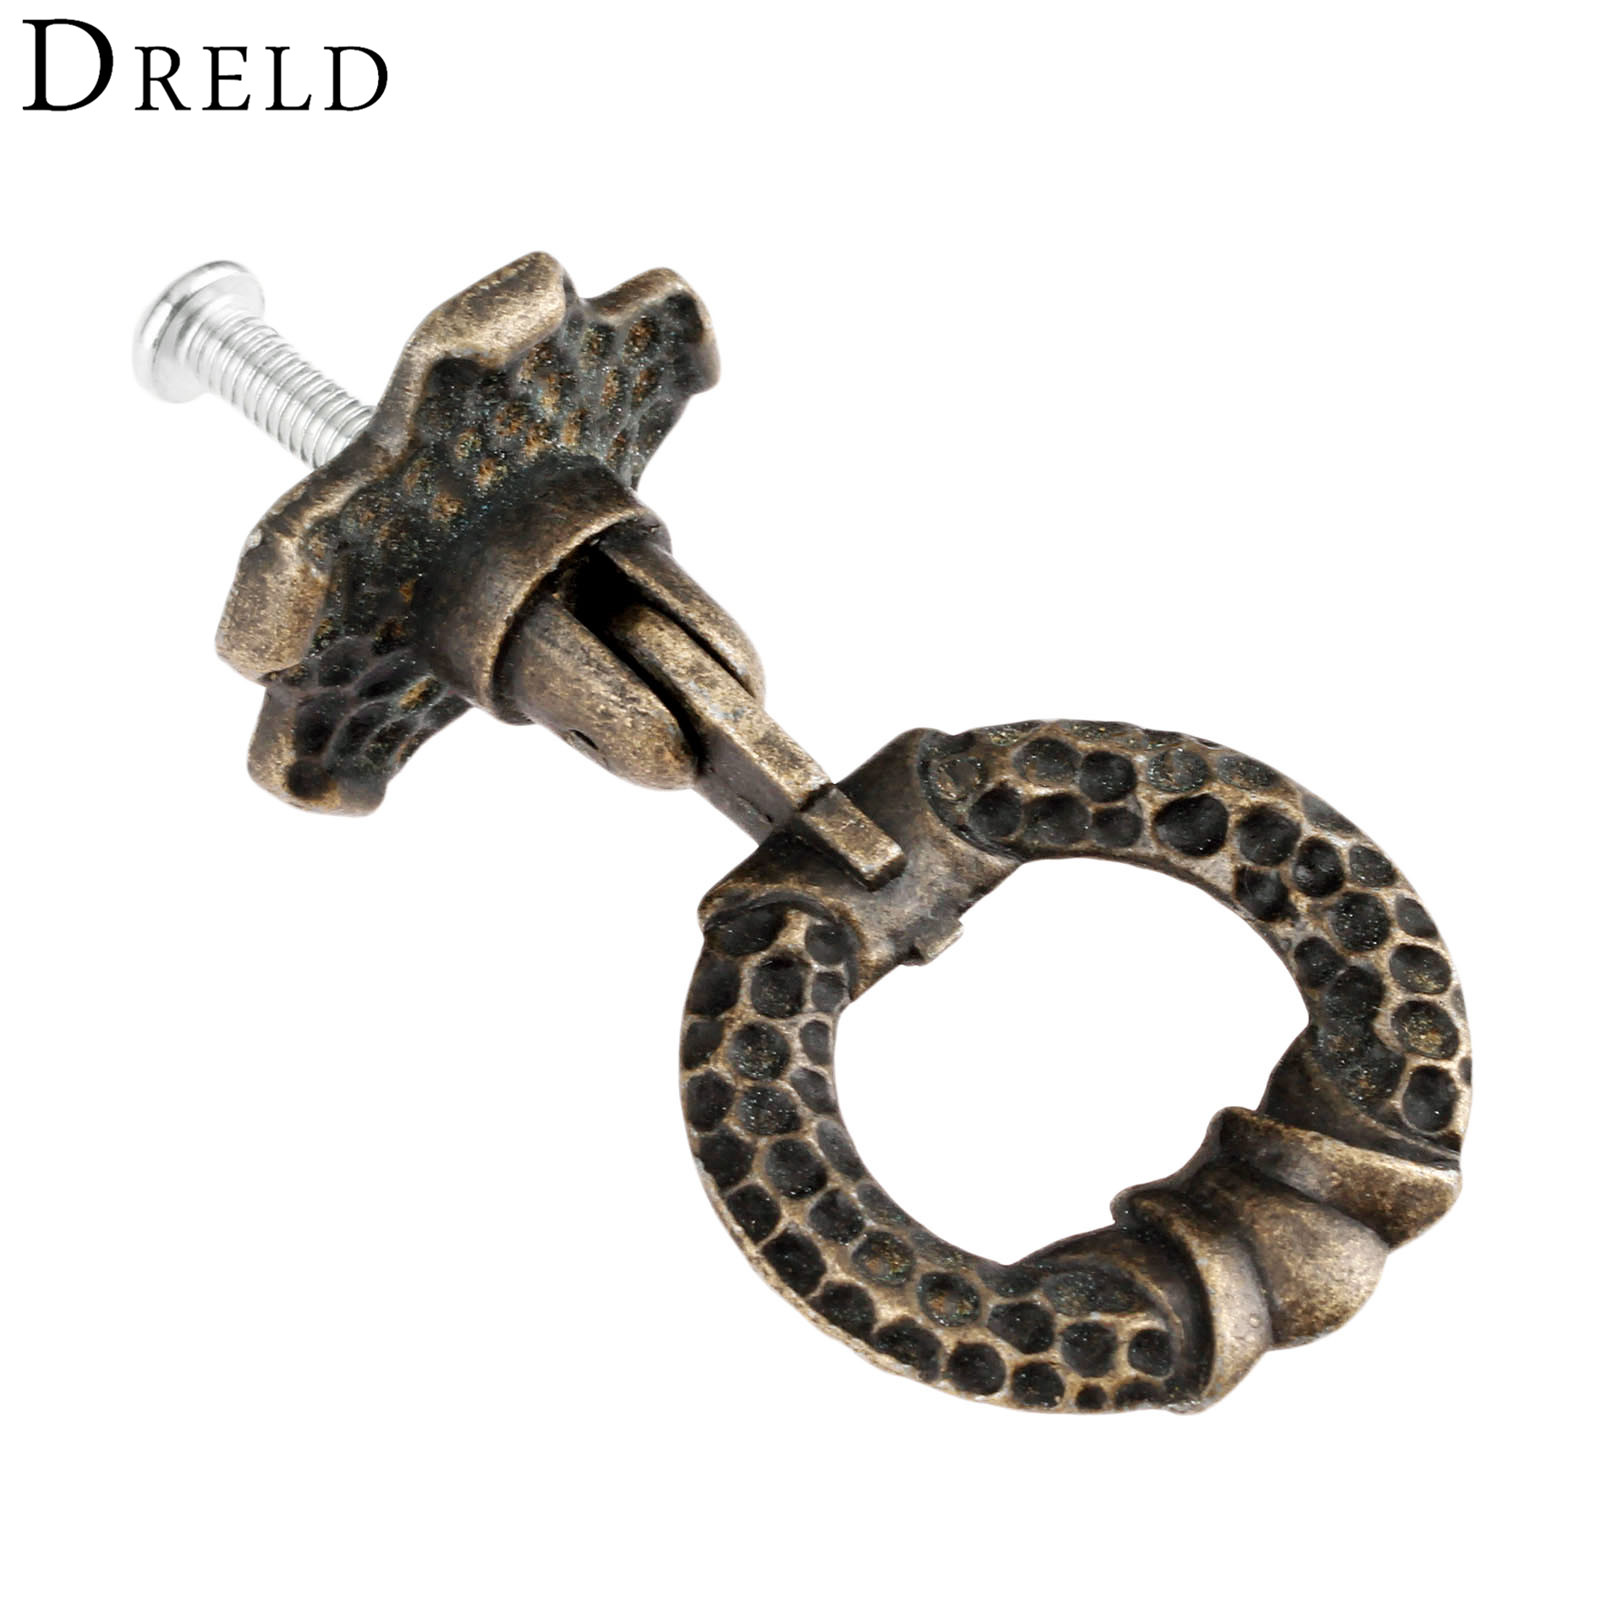 DRELD 1Pc Antique Bronze Furniture Handle Drawer Knobs Kitchen Cabinet Drawer Cupboard Door Handles Pull Furniture Fittings dreld 96 128 160mm furniture handle modern cabinet knobs and handles door cupboard drawer kitchen pull handle furniture hardware